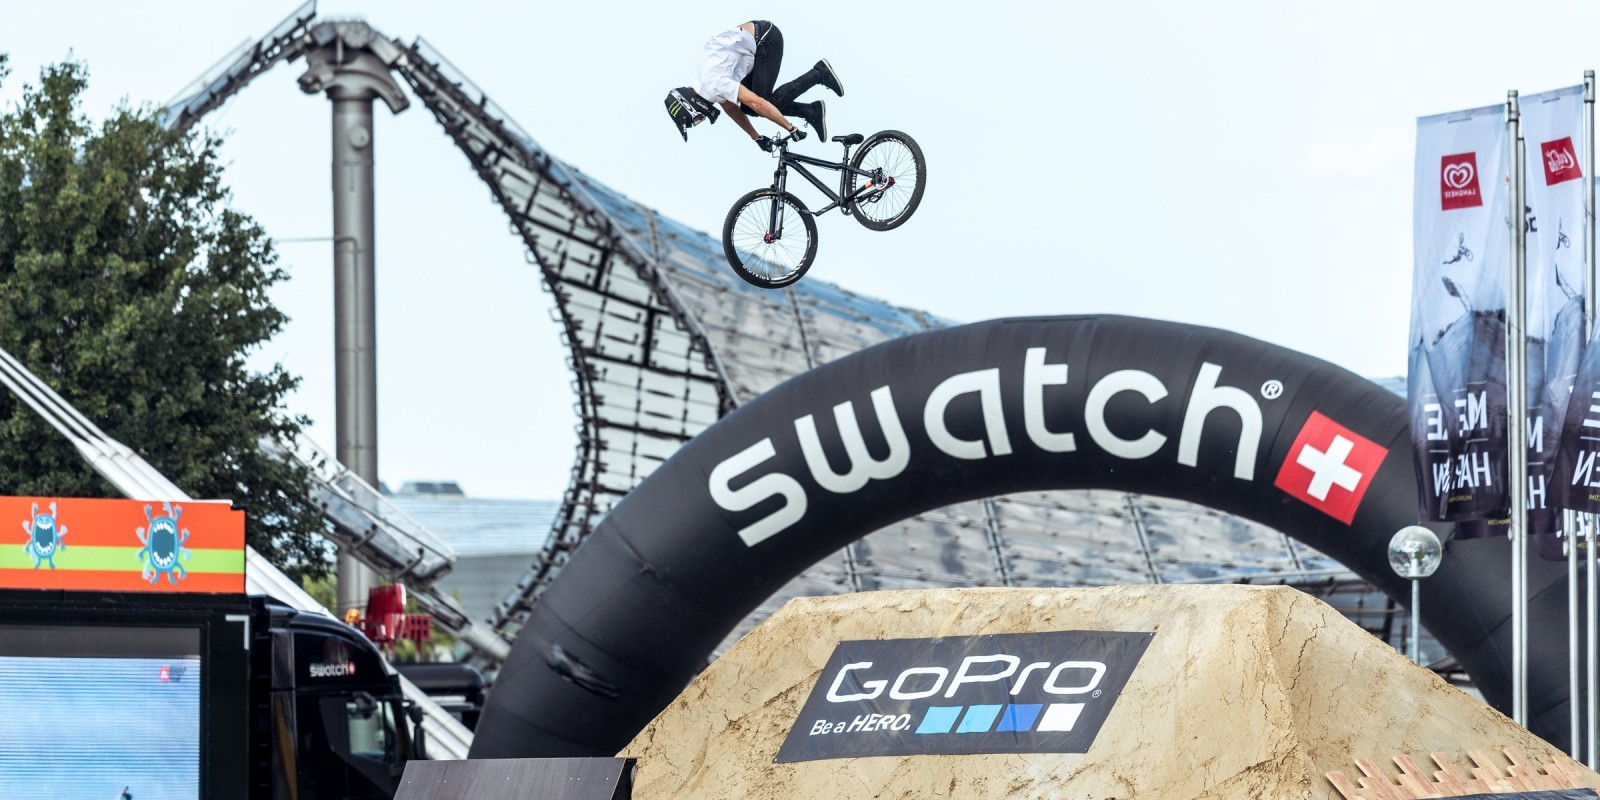 Max Fredriksson competing at Swatch Primeline in Munich.